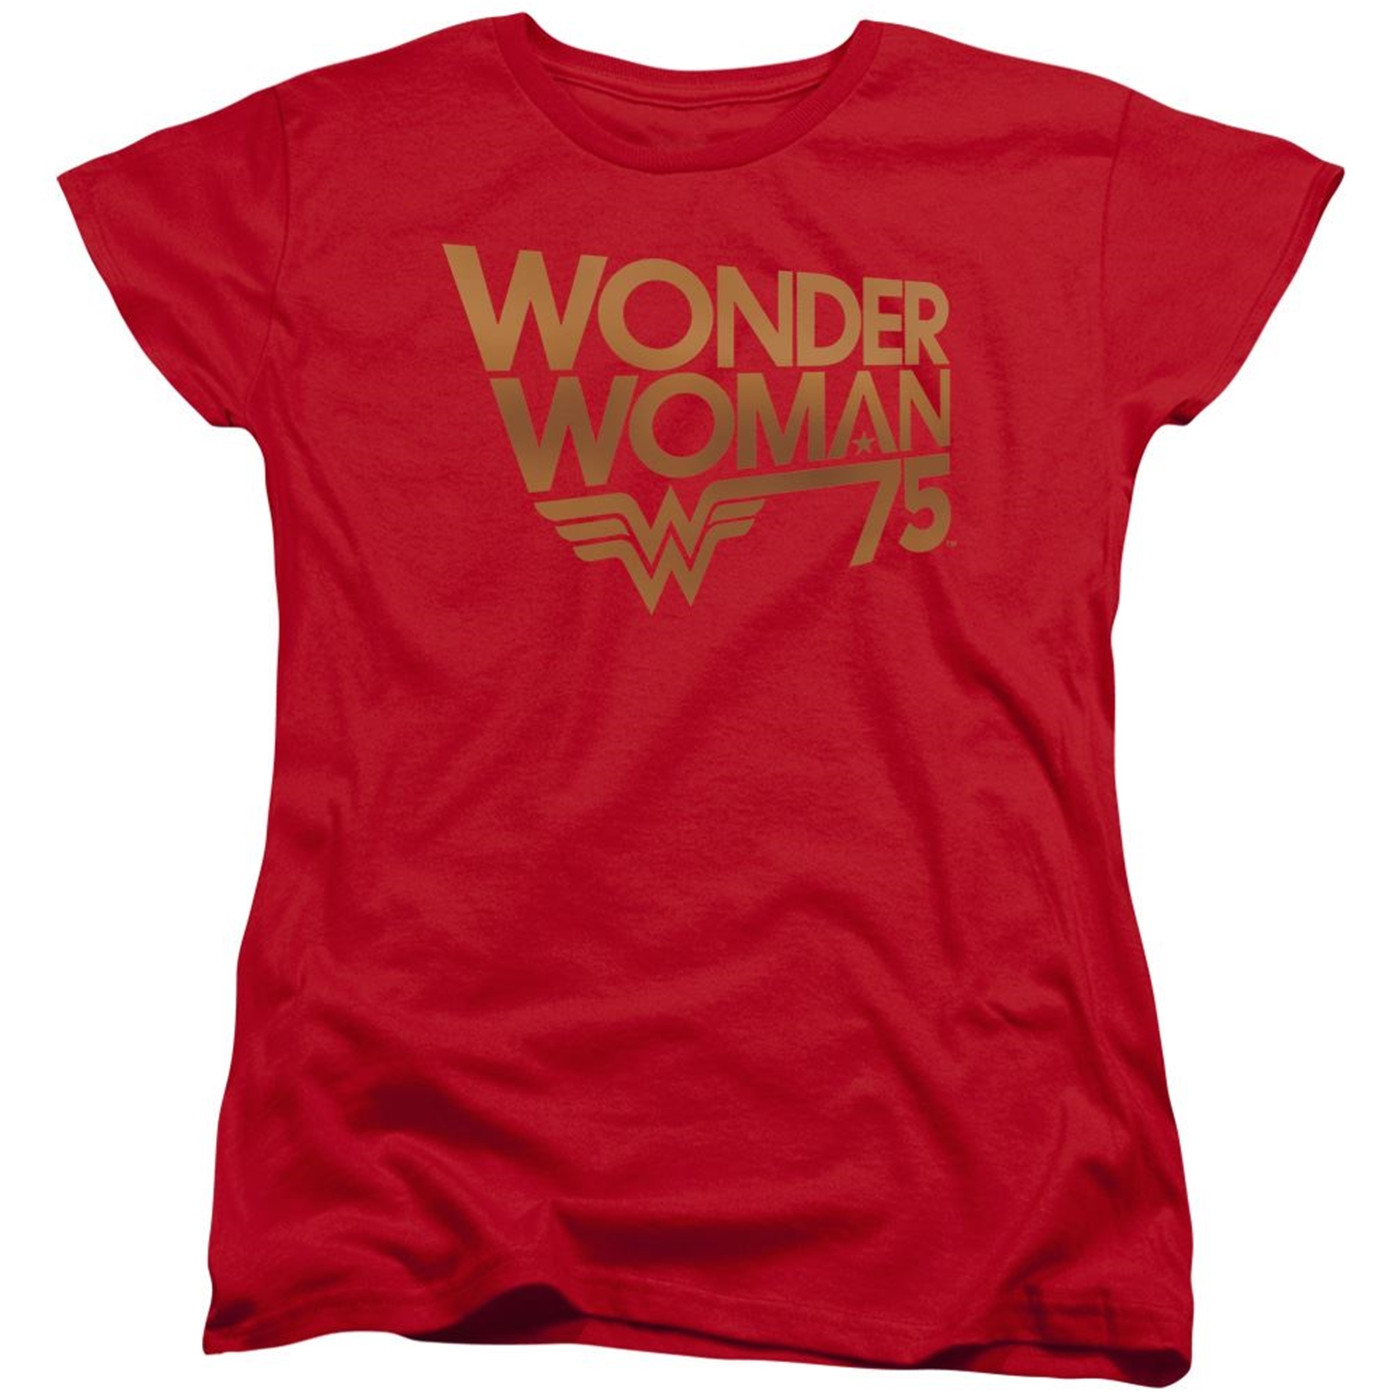 Wonder Woman 75 Red and Gold Women's T-Shirt